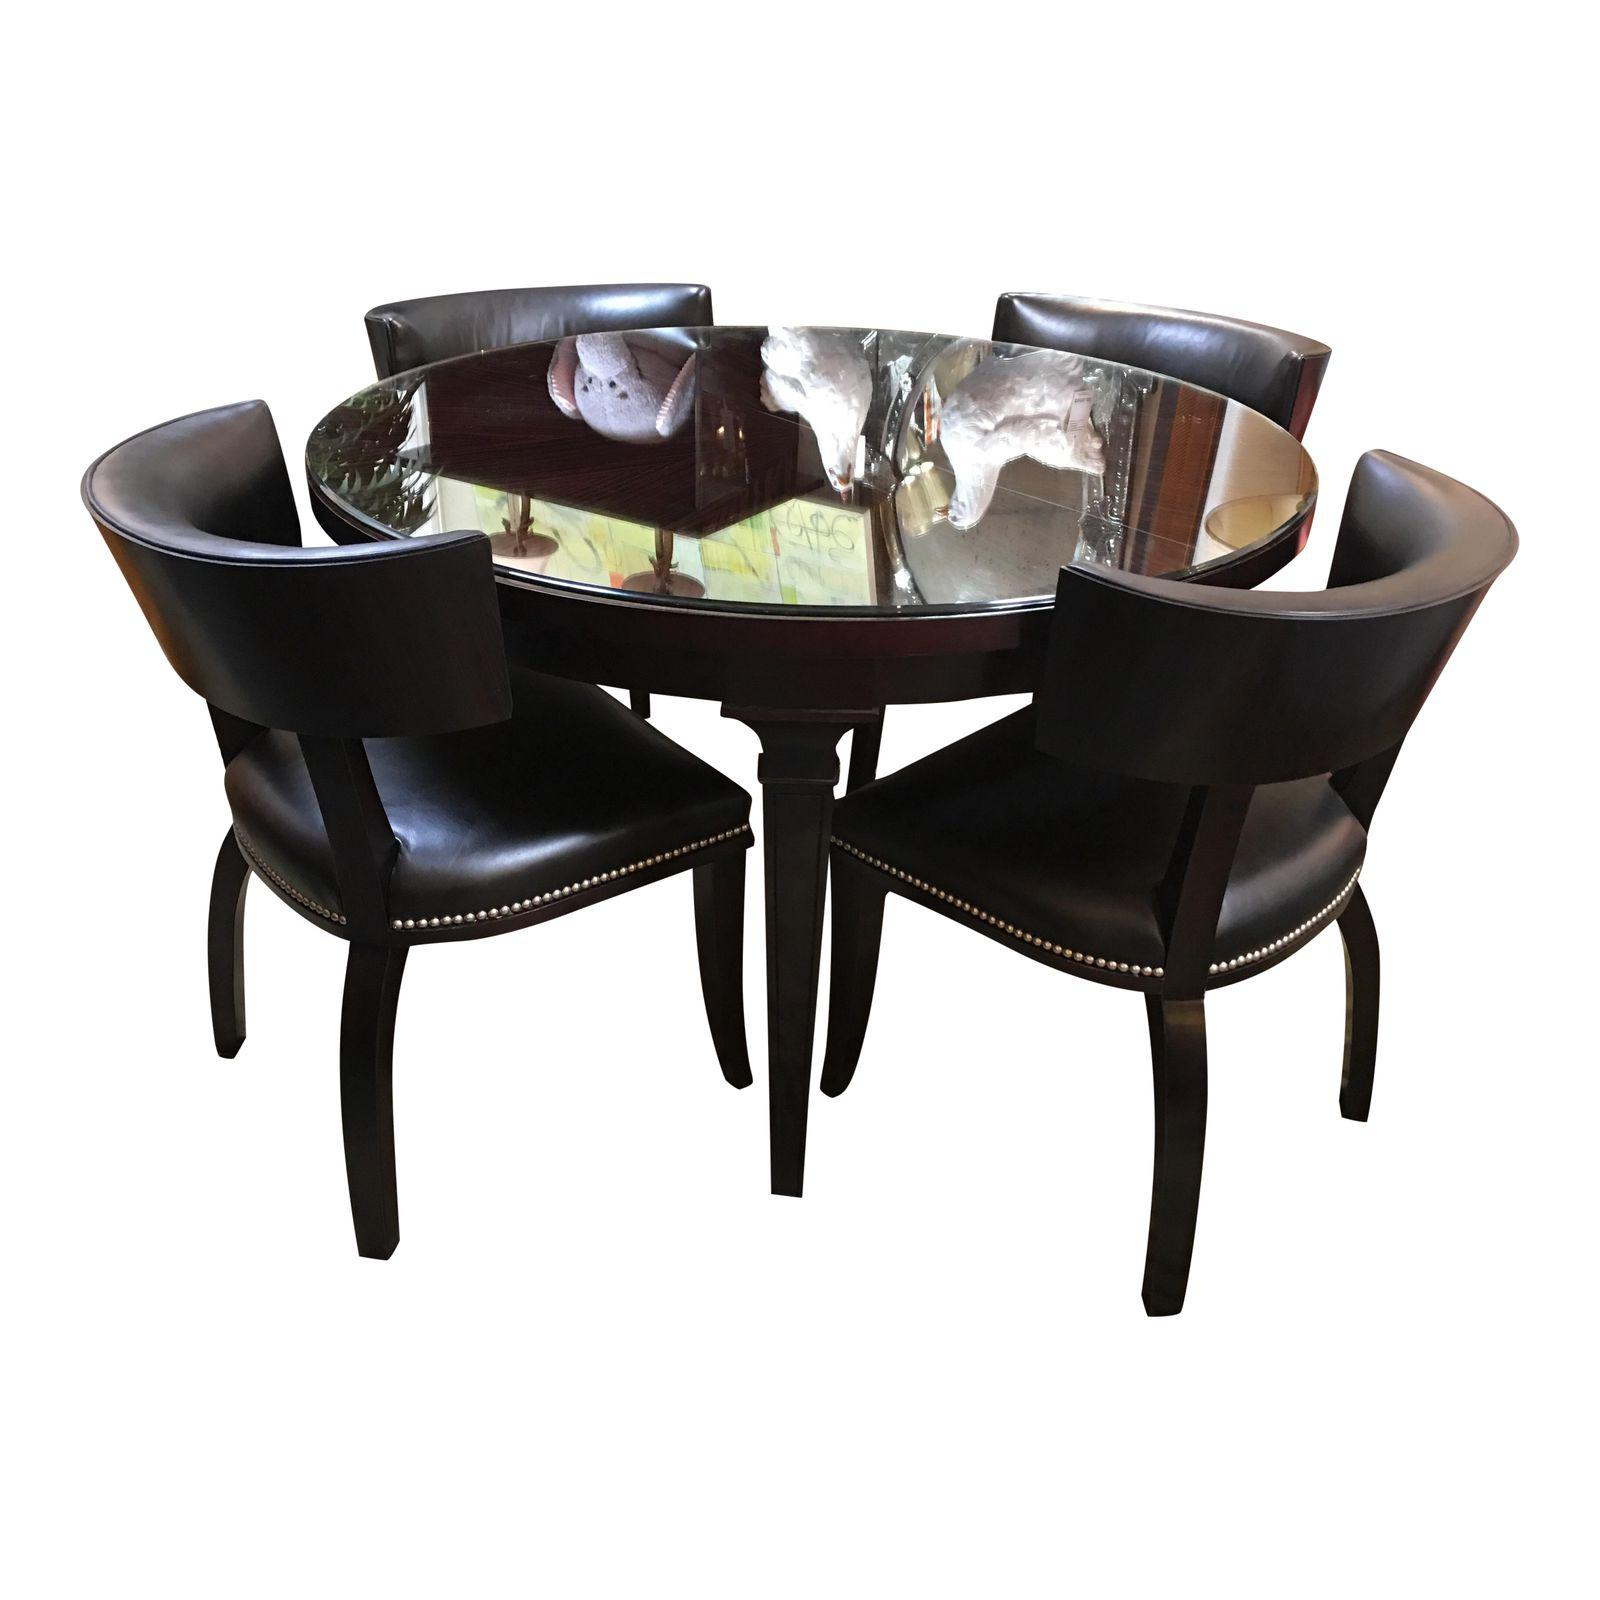 Ralph Lauren Clivedon Dining Table Design Plus Gallery